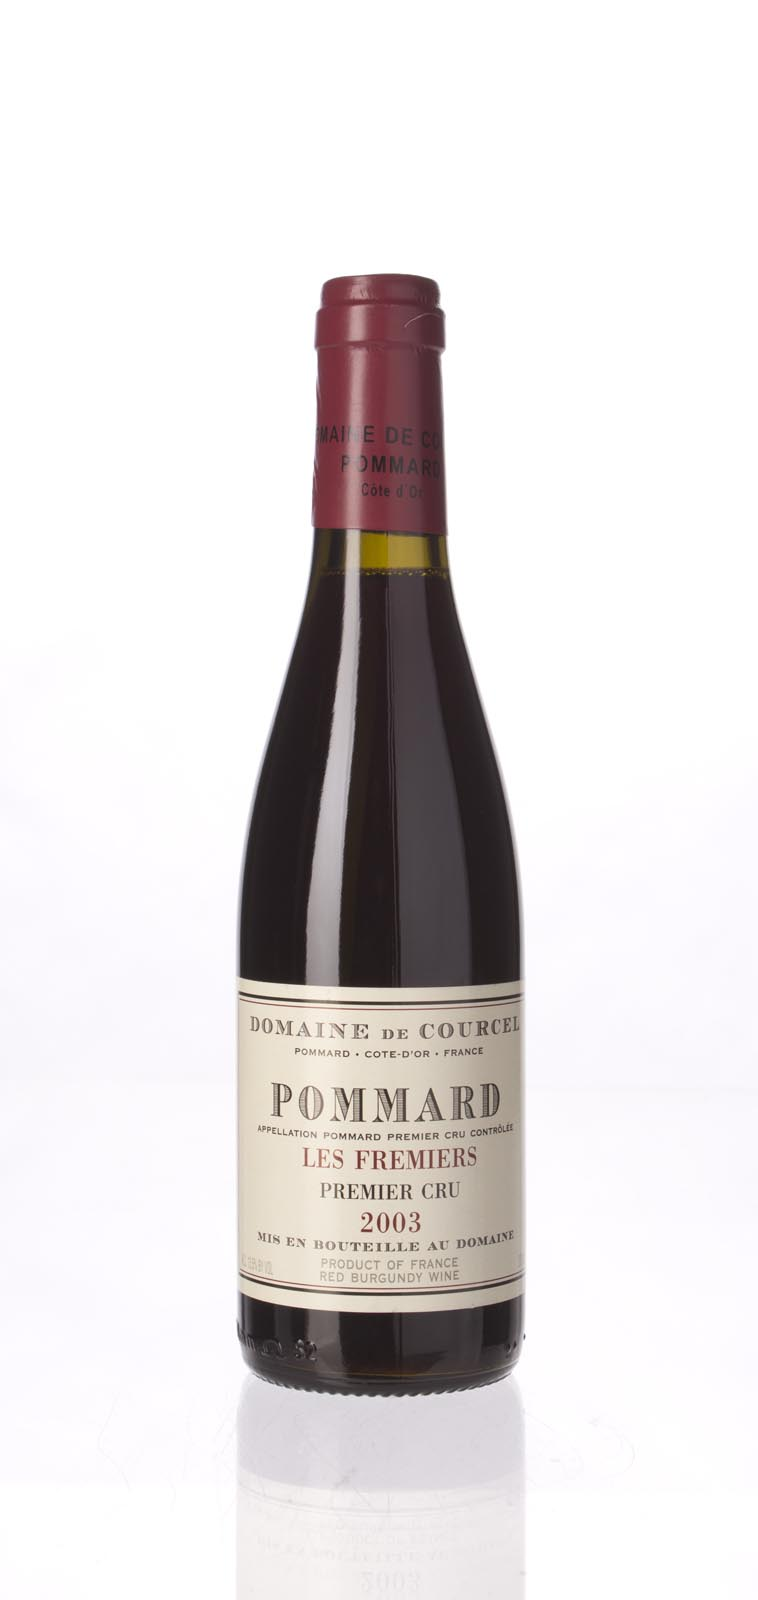 Domaine de Courcel Pommard les Fremiers 2003, 375ml (WS90) from The BPW - Merchants of rare and fine wines.